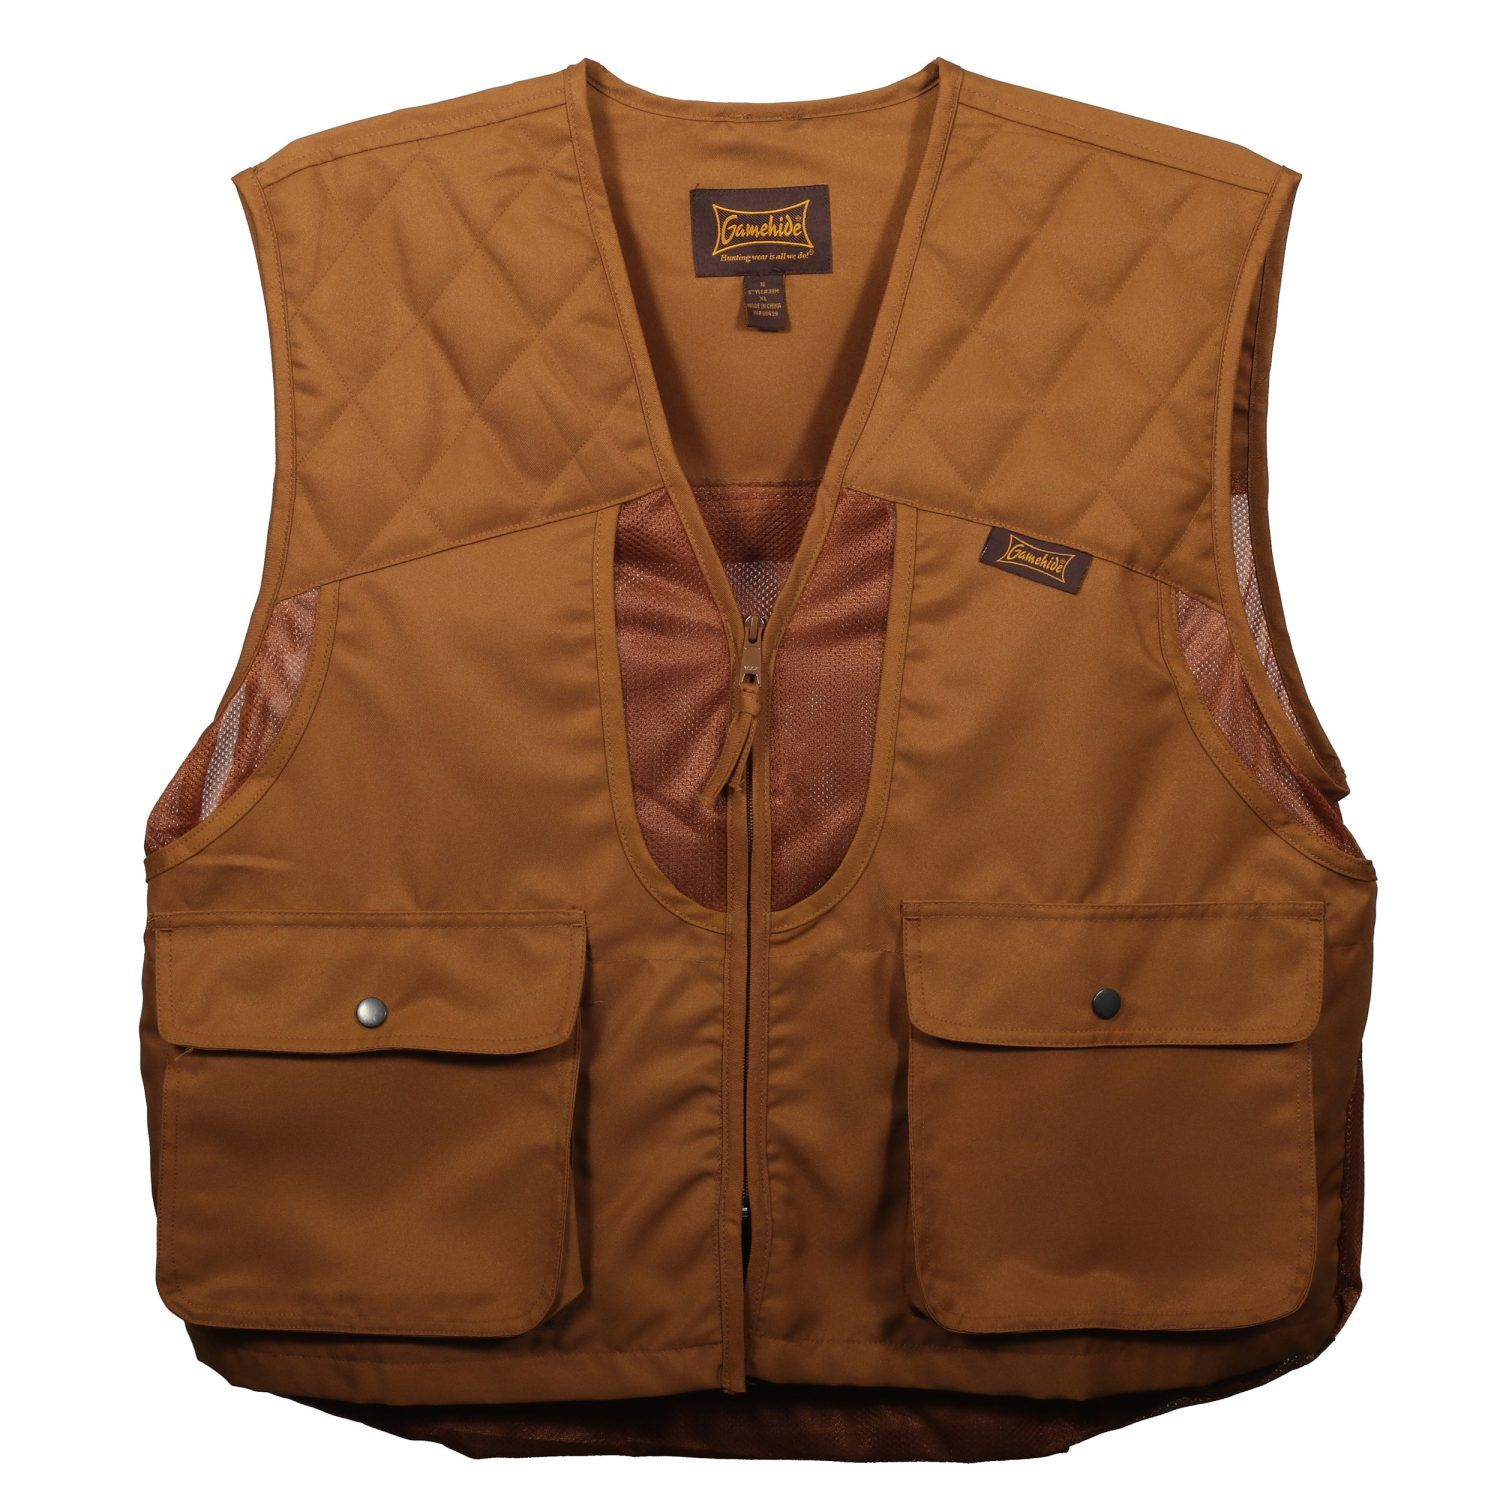 748a9049a7240 Columbia® Warm-Weather Cockbird Vest at Cabela's   Hunting   Hunting  clothes, Hunting, Vest